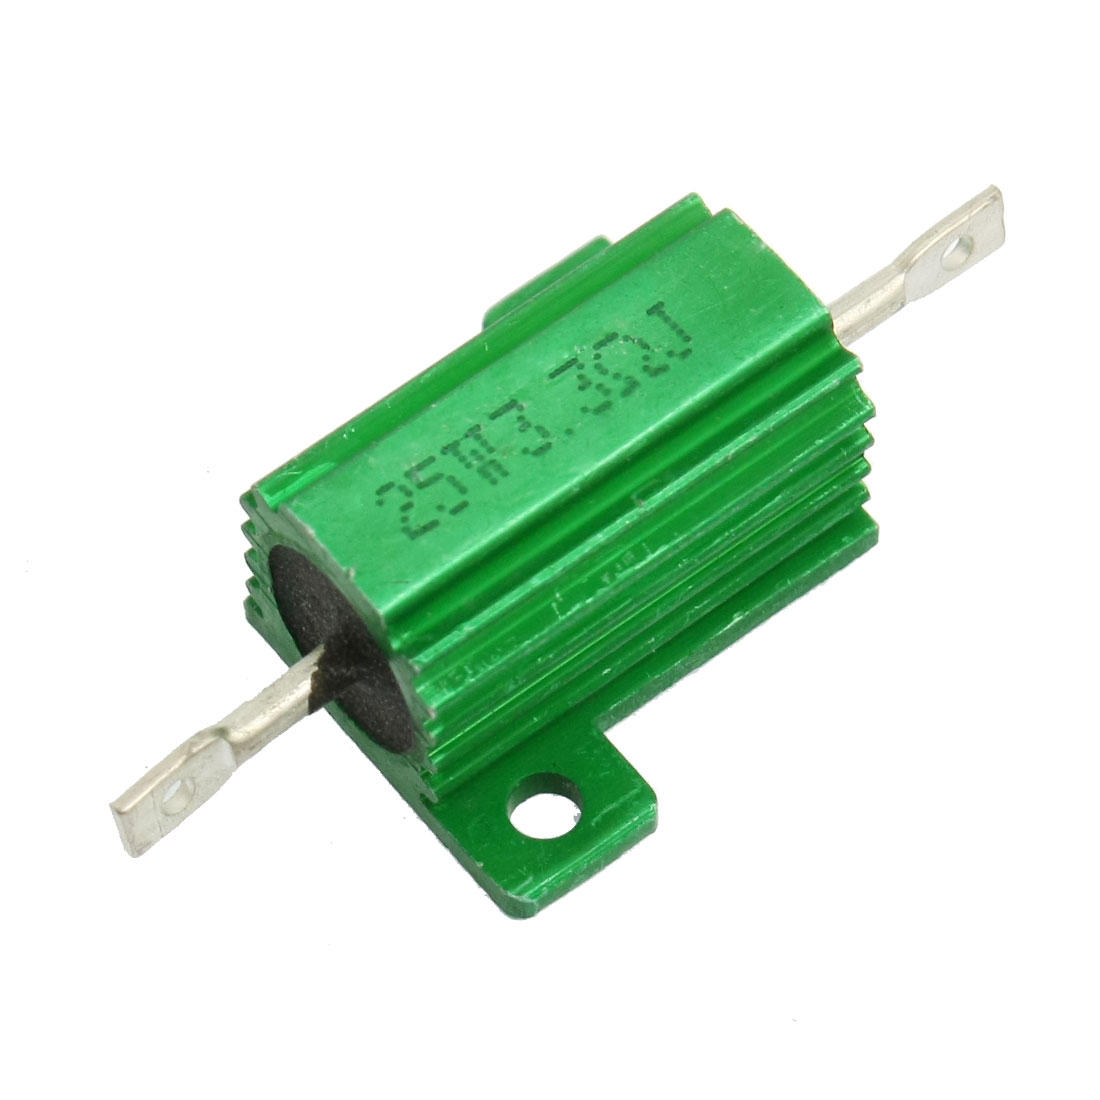 25W 3.3 Ohm Green Aluminium Chassis Mounted Wirewound Resistor